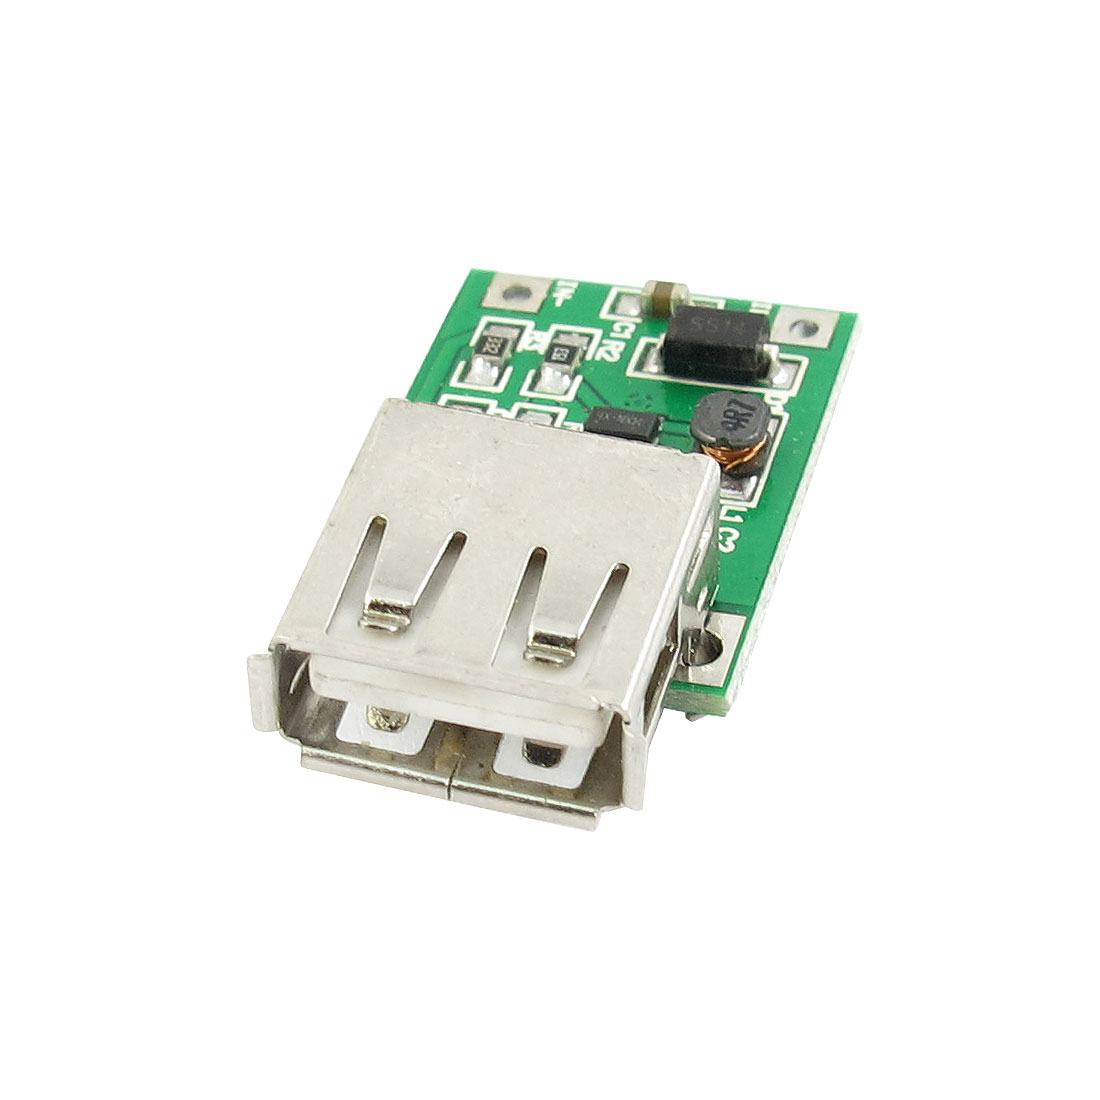 DC 0.9V-5V to DC 5V 600mA Step-Up Boost Module Power Supply Circuit w USB2.0 Port